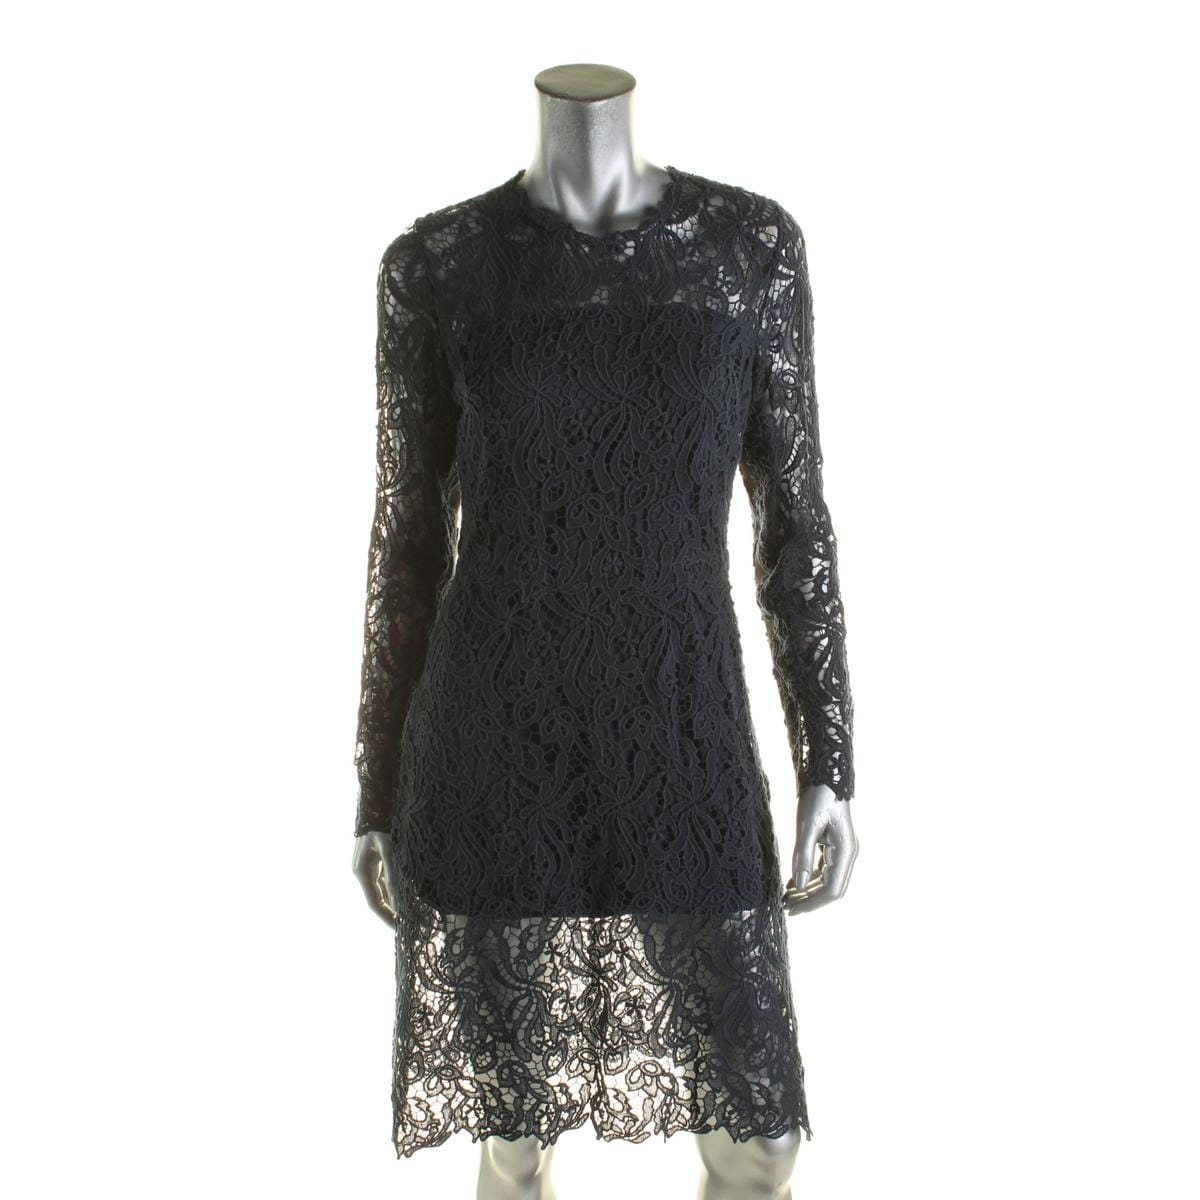 2e76a80933c95 Shop Elie Tahari Womens Priscilla Party Dress Lace Floral - Free Shipping  Today - Overstock - 17655294